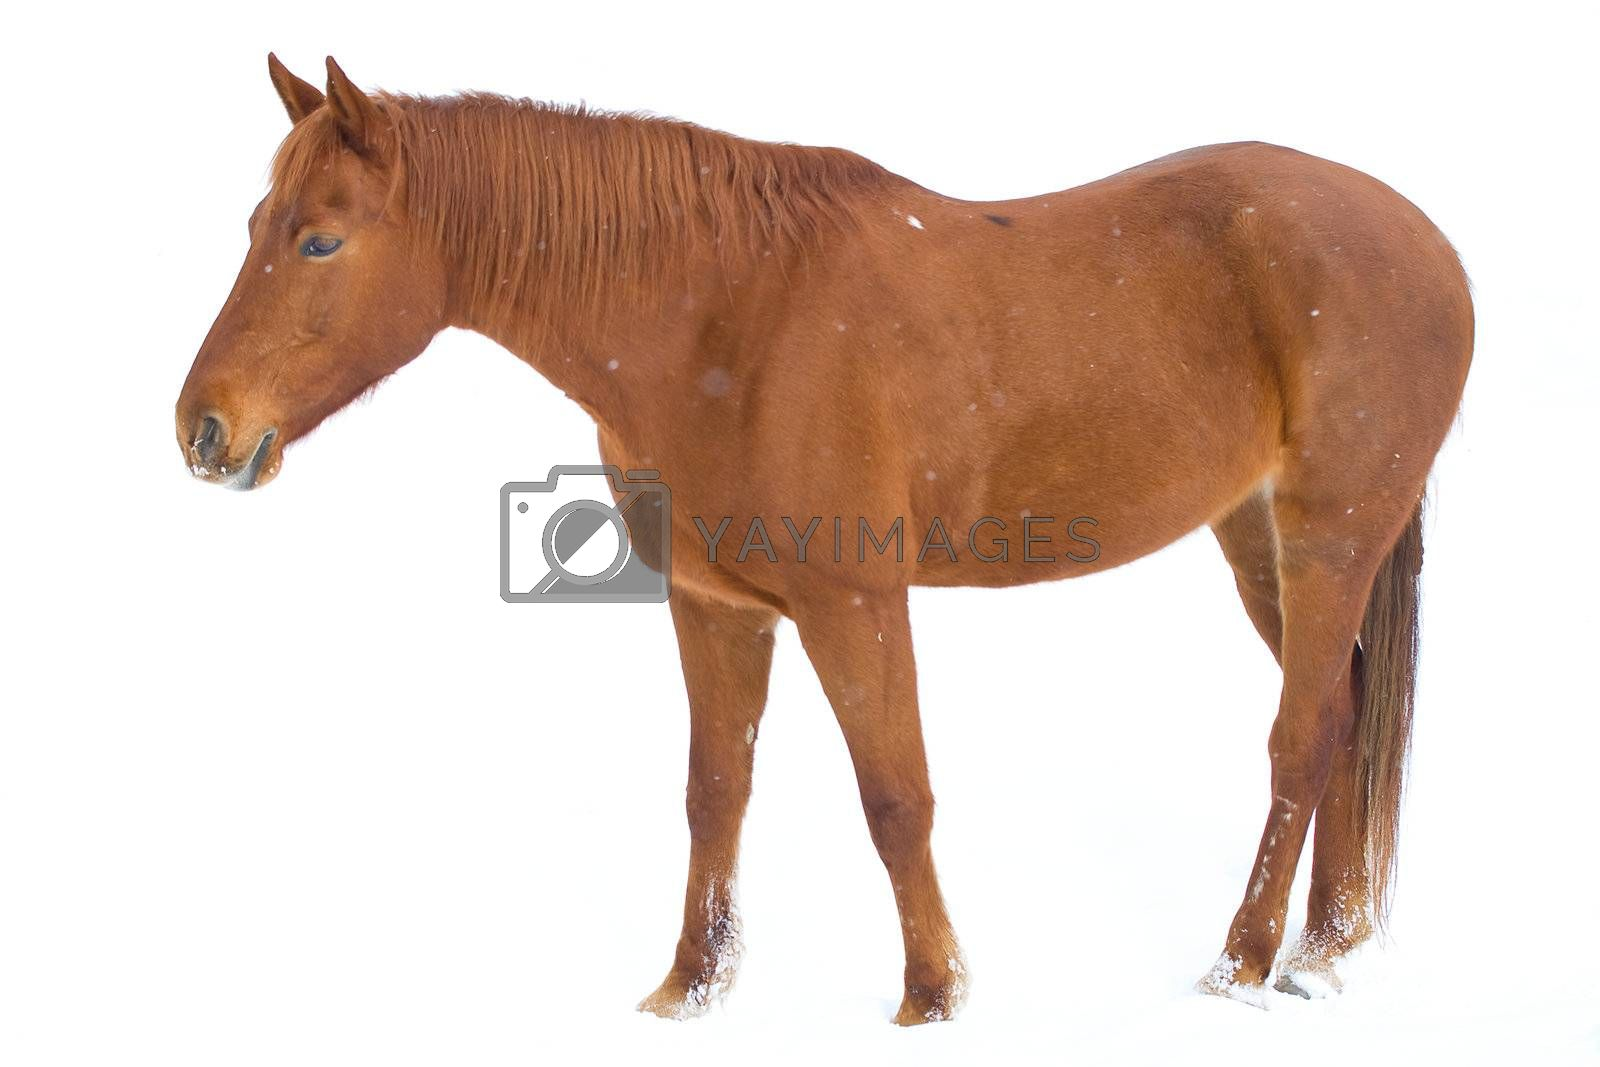 brown horse on snow background